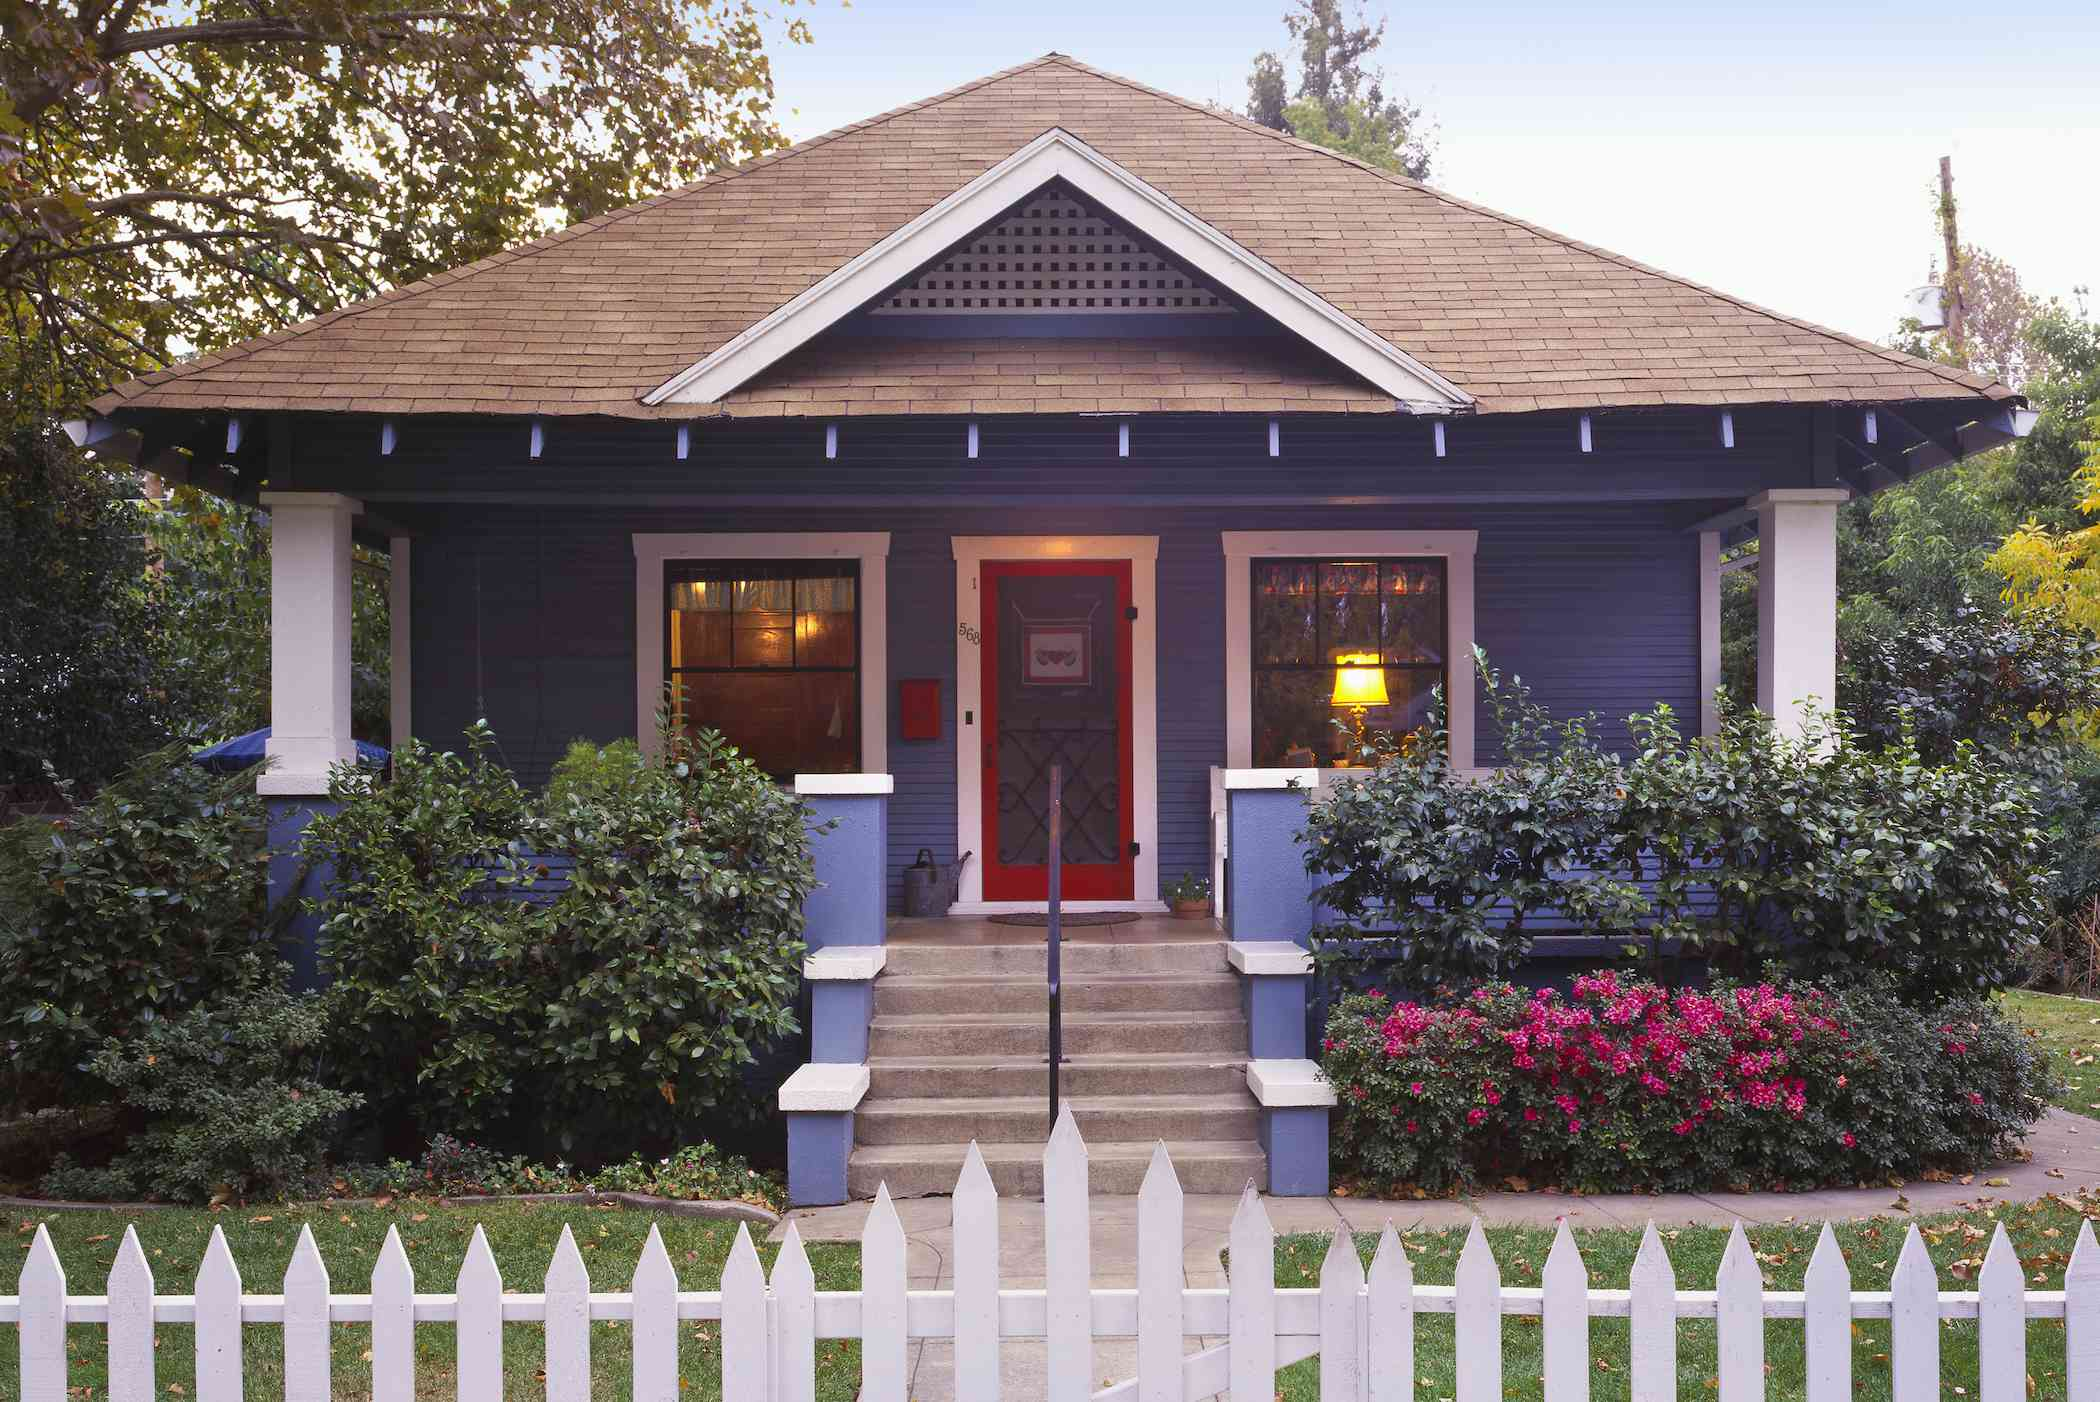 House Styles: The Look Of The American Home